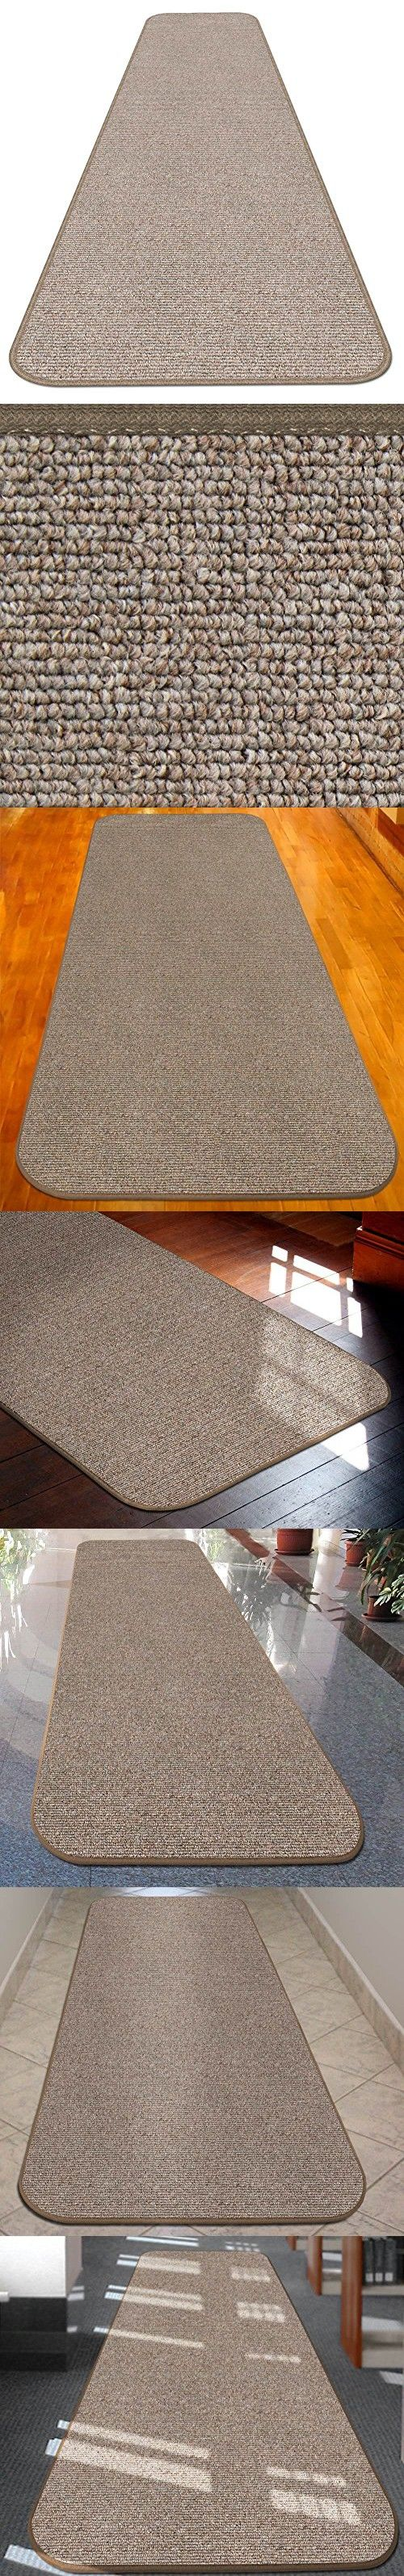 House Home And More Skid Resistant Carpet Runner Pebble Beige 8 Ft X 27 In Many Other Sizes To Choose Carpet Runner Carpet Home